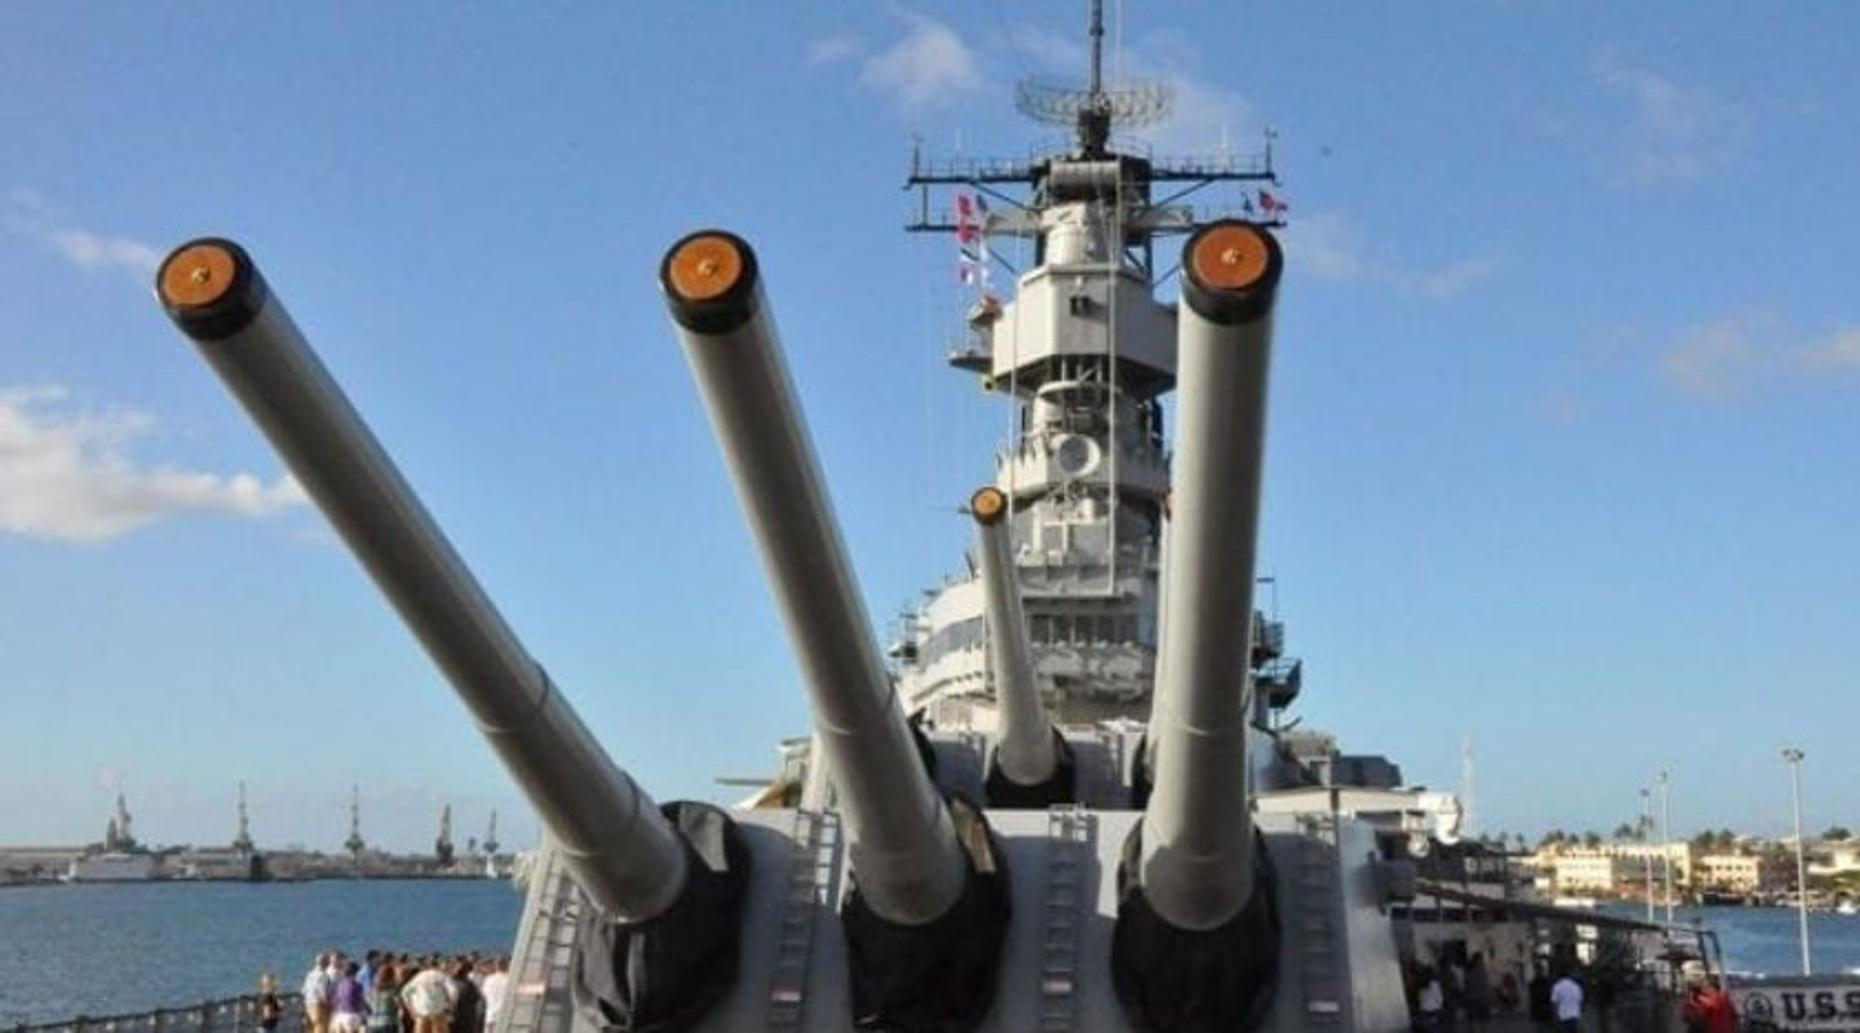 Pearl Harbor Tours >> Pacific Aviation Museum Arizona Memorial Pearl Harbor Tour In Oahu In Oahu Book Tours Activities At Peek Com